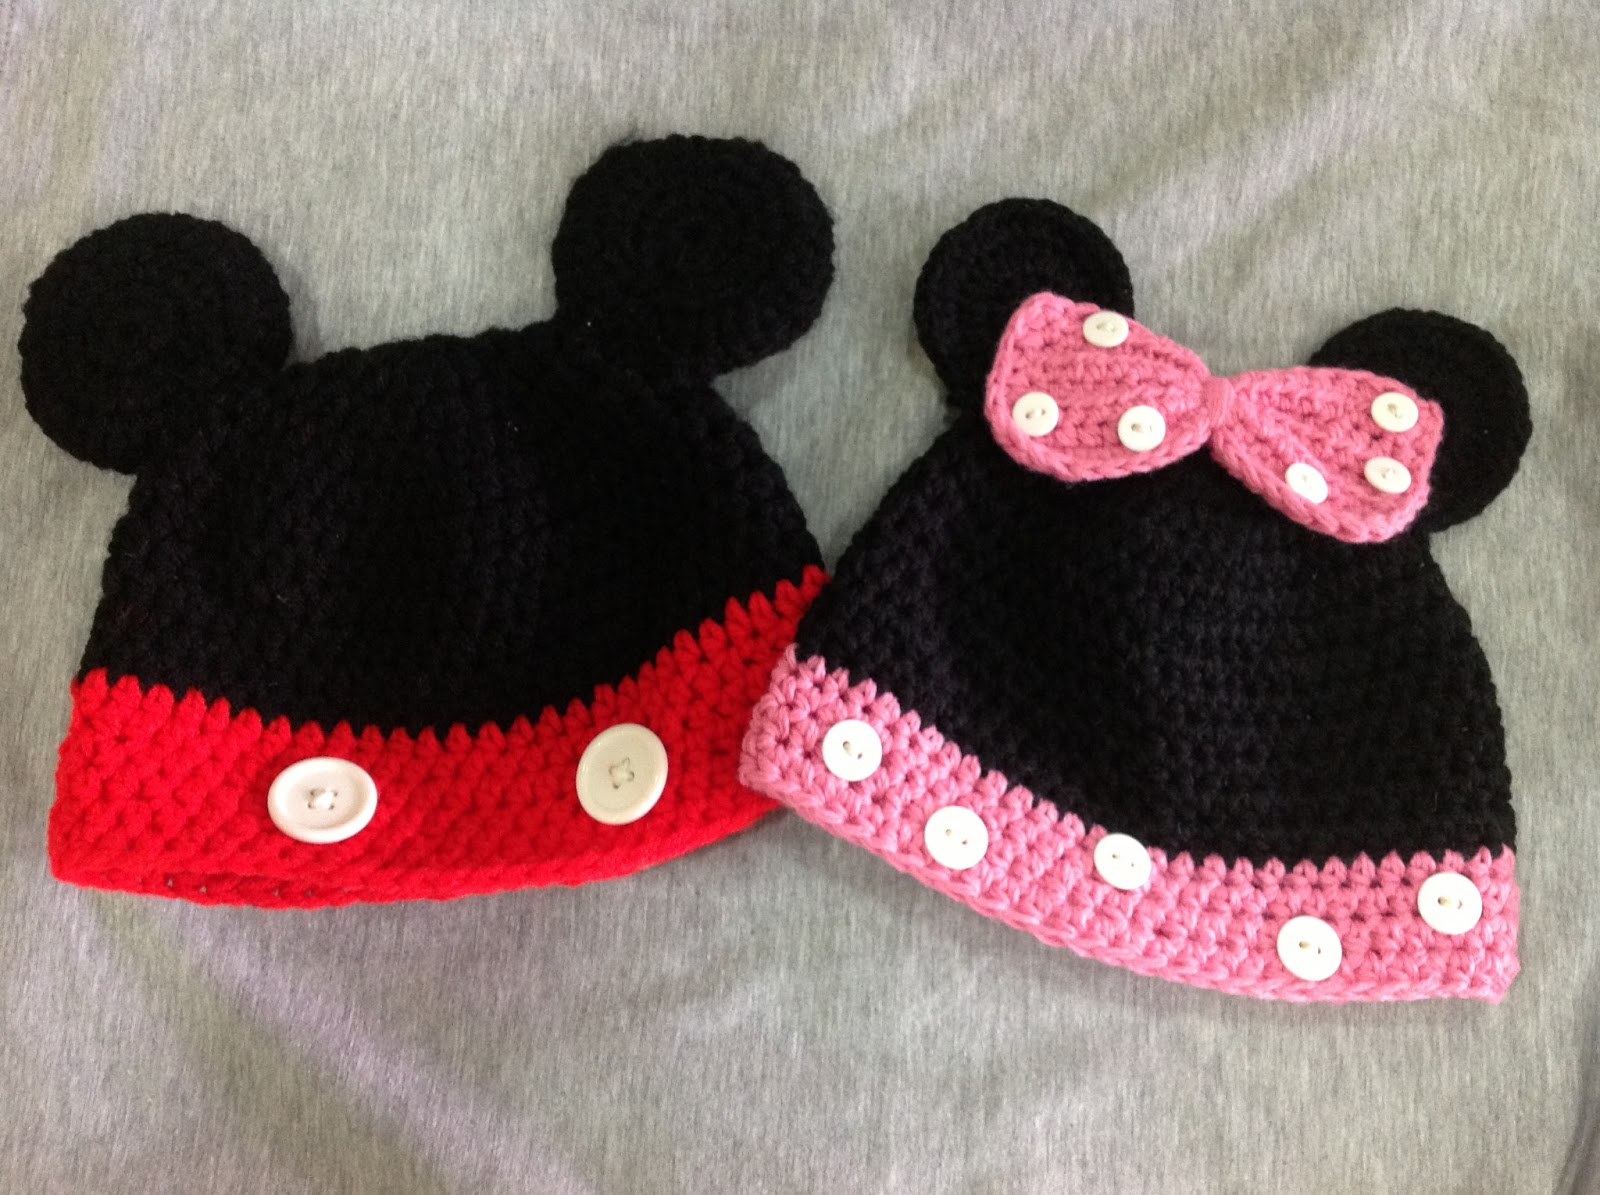 Hooks, Crochet & Yarn: Mickey & Minnie Hats